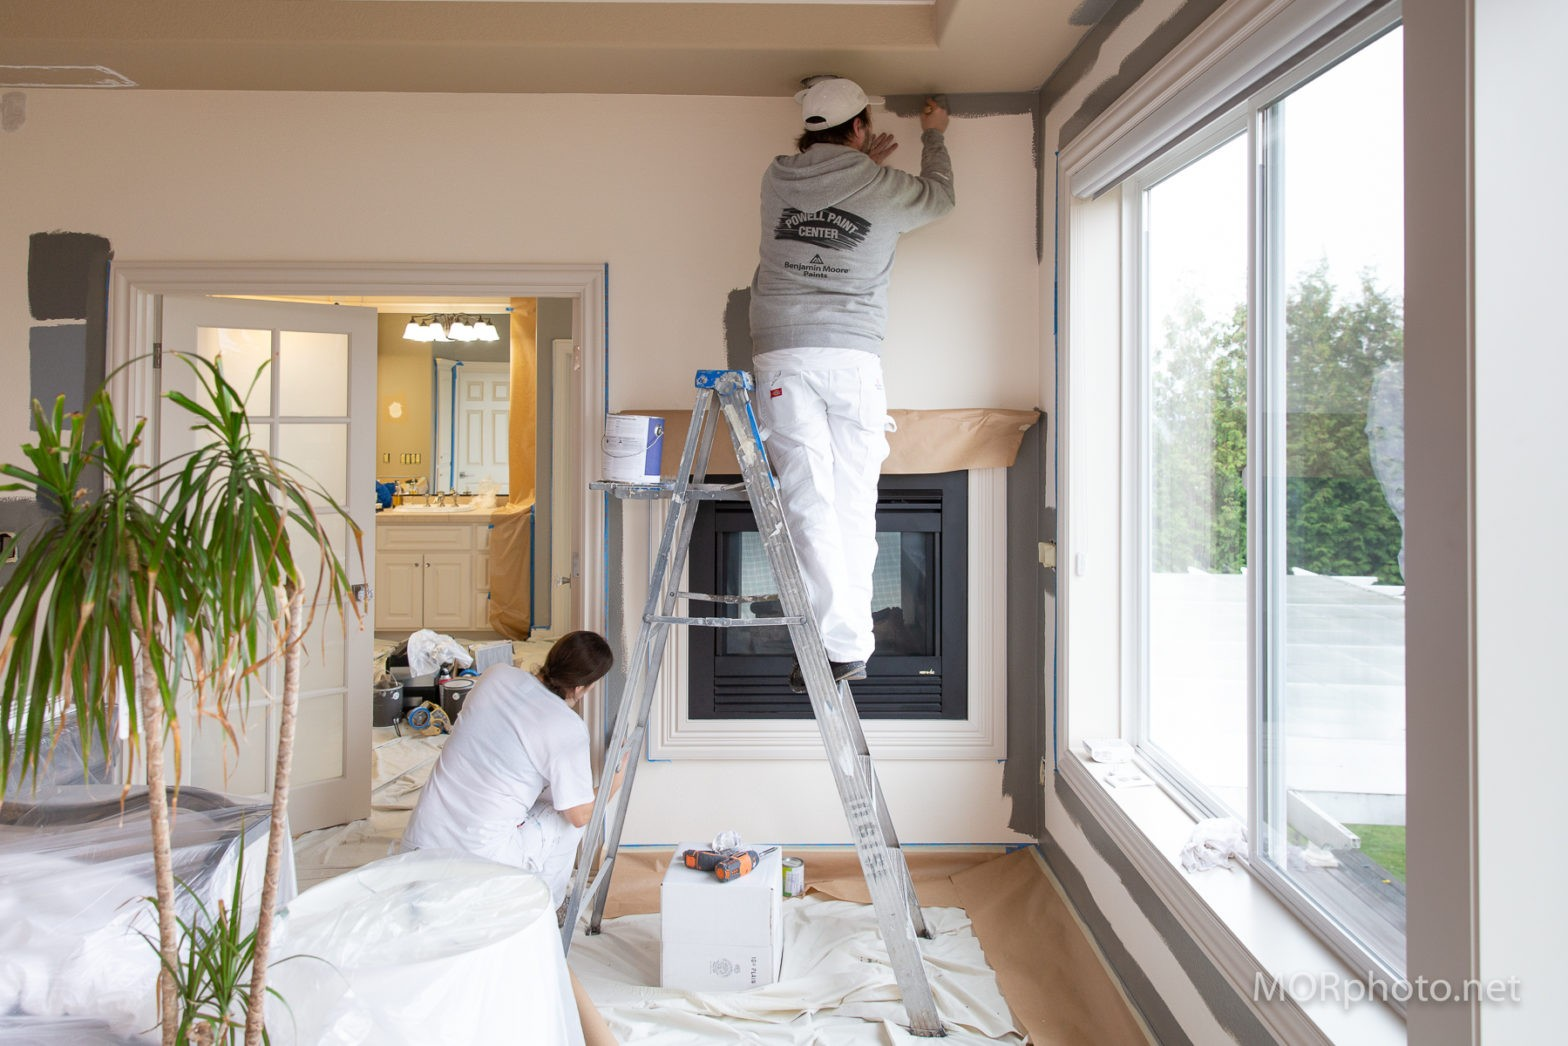 League City-Sugar Land TX Professional Painting Contractors-We offer Residential & Commercial Painting, Interior Painting, Exterior Painting, Primer Painting, Industrial Painting, Professional Painters, Institutional Painters, and more.